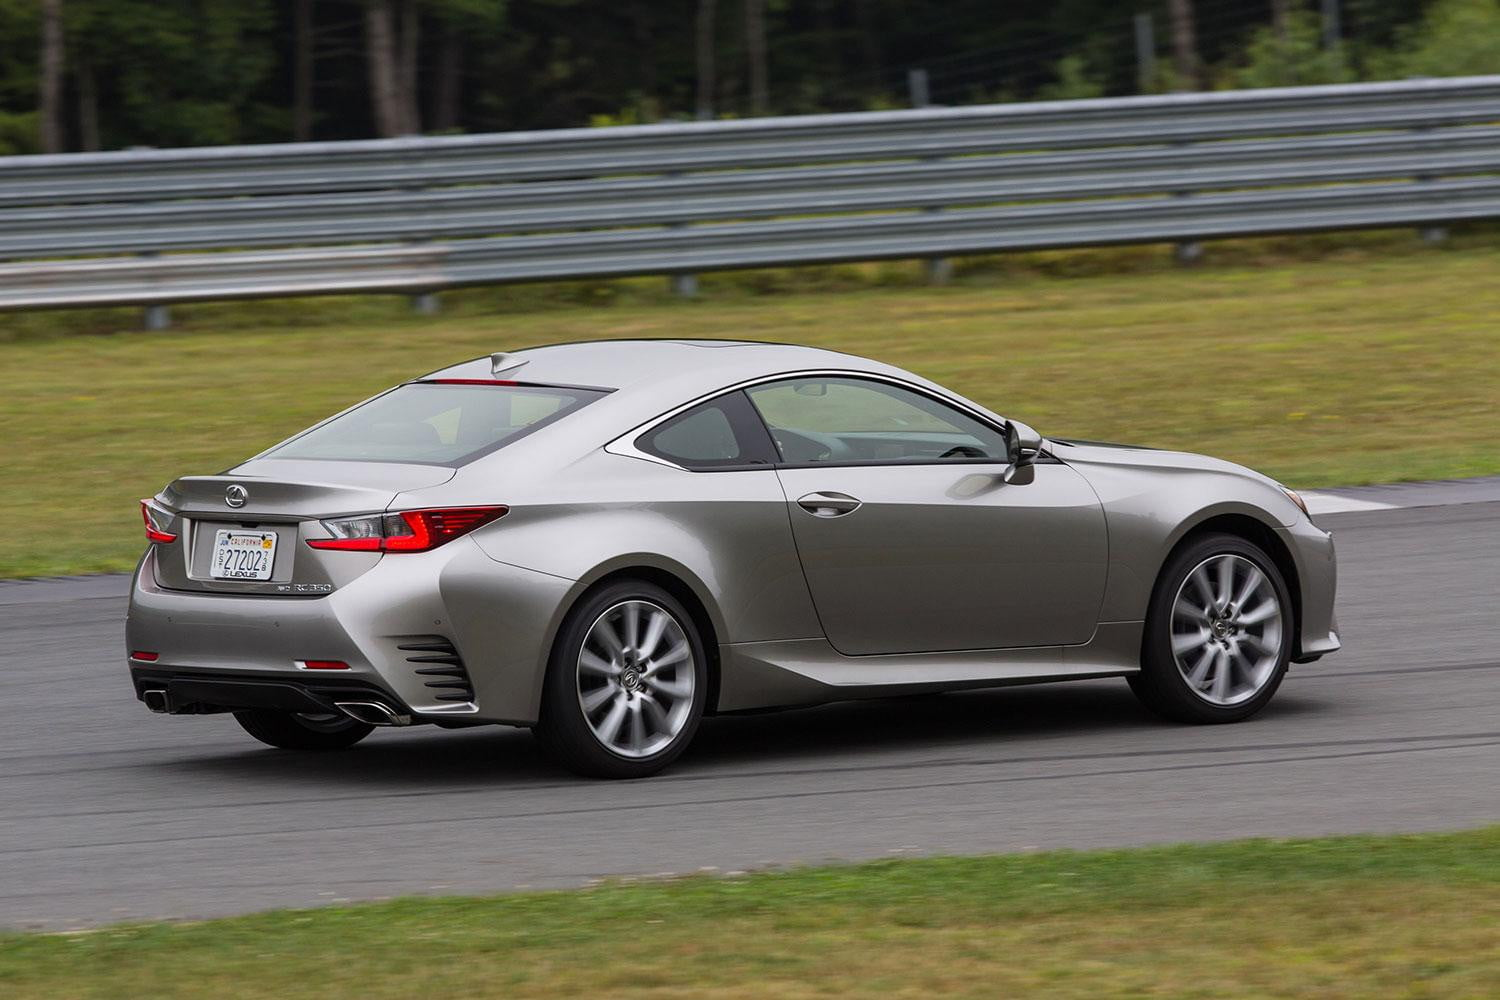 Unique 2015 Lexus RC 350 F SPORT Review  Digital Trends